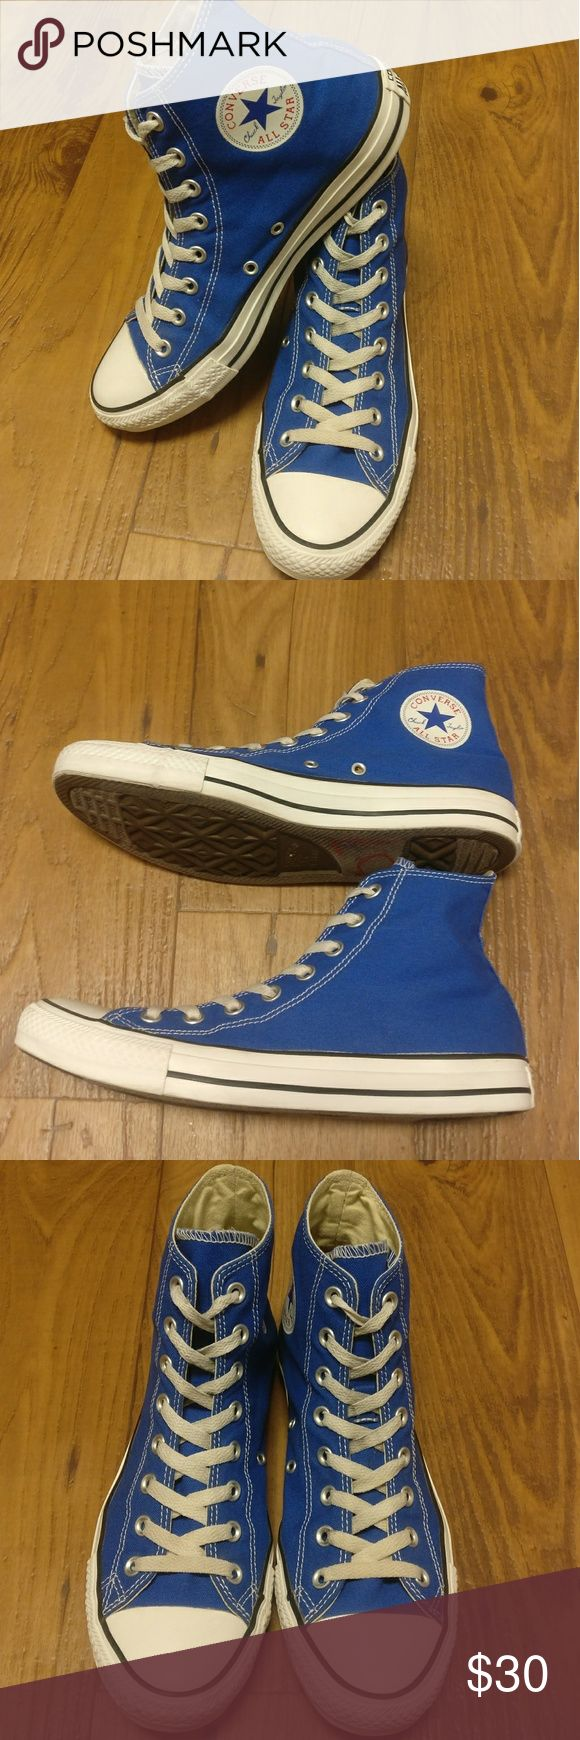 Blue High Top Converse Blue Converse Chuck Taylor's  All Star High Tops  Women's Size 10 / Men's Size 8 / Unisex Style   These shoes are nearly perfect. Worn only a couple times. Just like new. No rips or tears on canvas or rubber. No wear on the soles and sides.  These shoes look awesome! Converse Shoes Sneakers